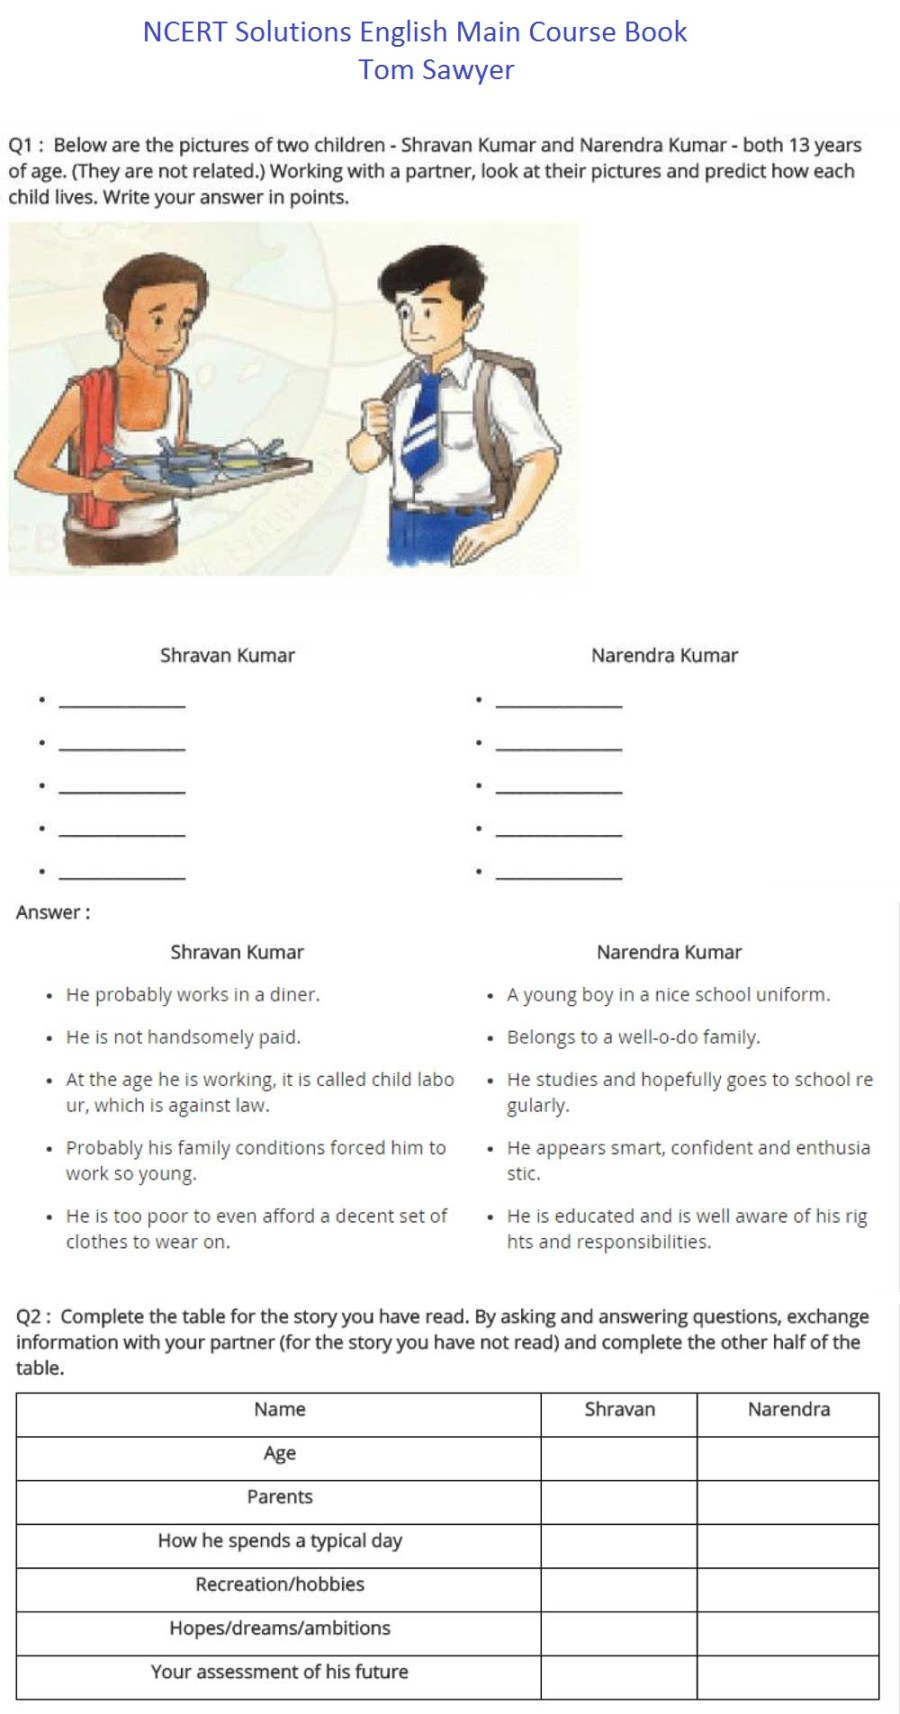 ncert solutions for class 9 english chapter 15 main course book tom sawyer 1